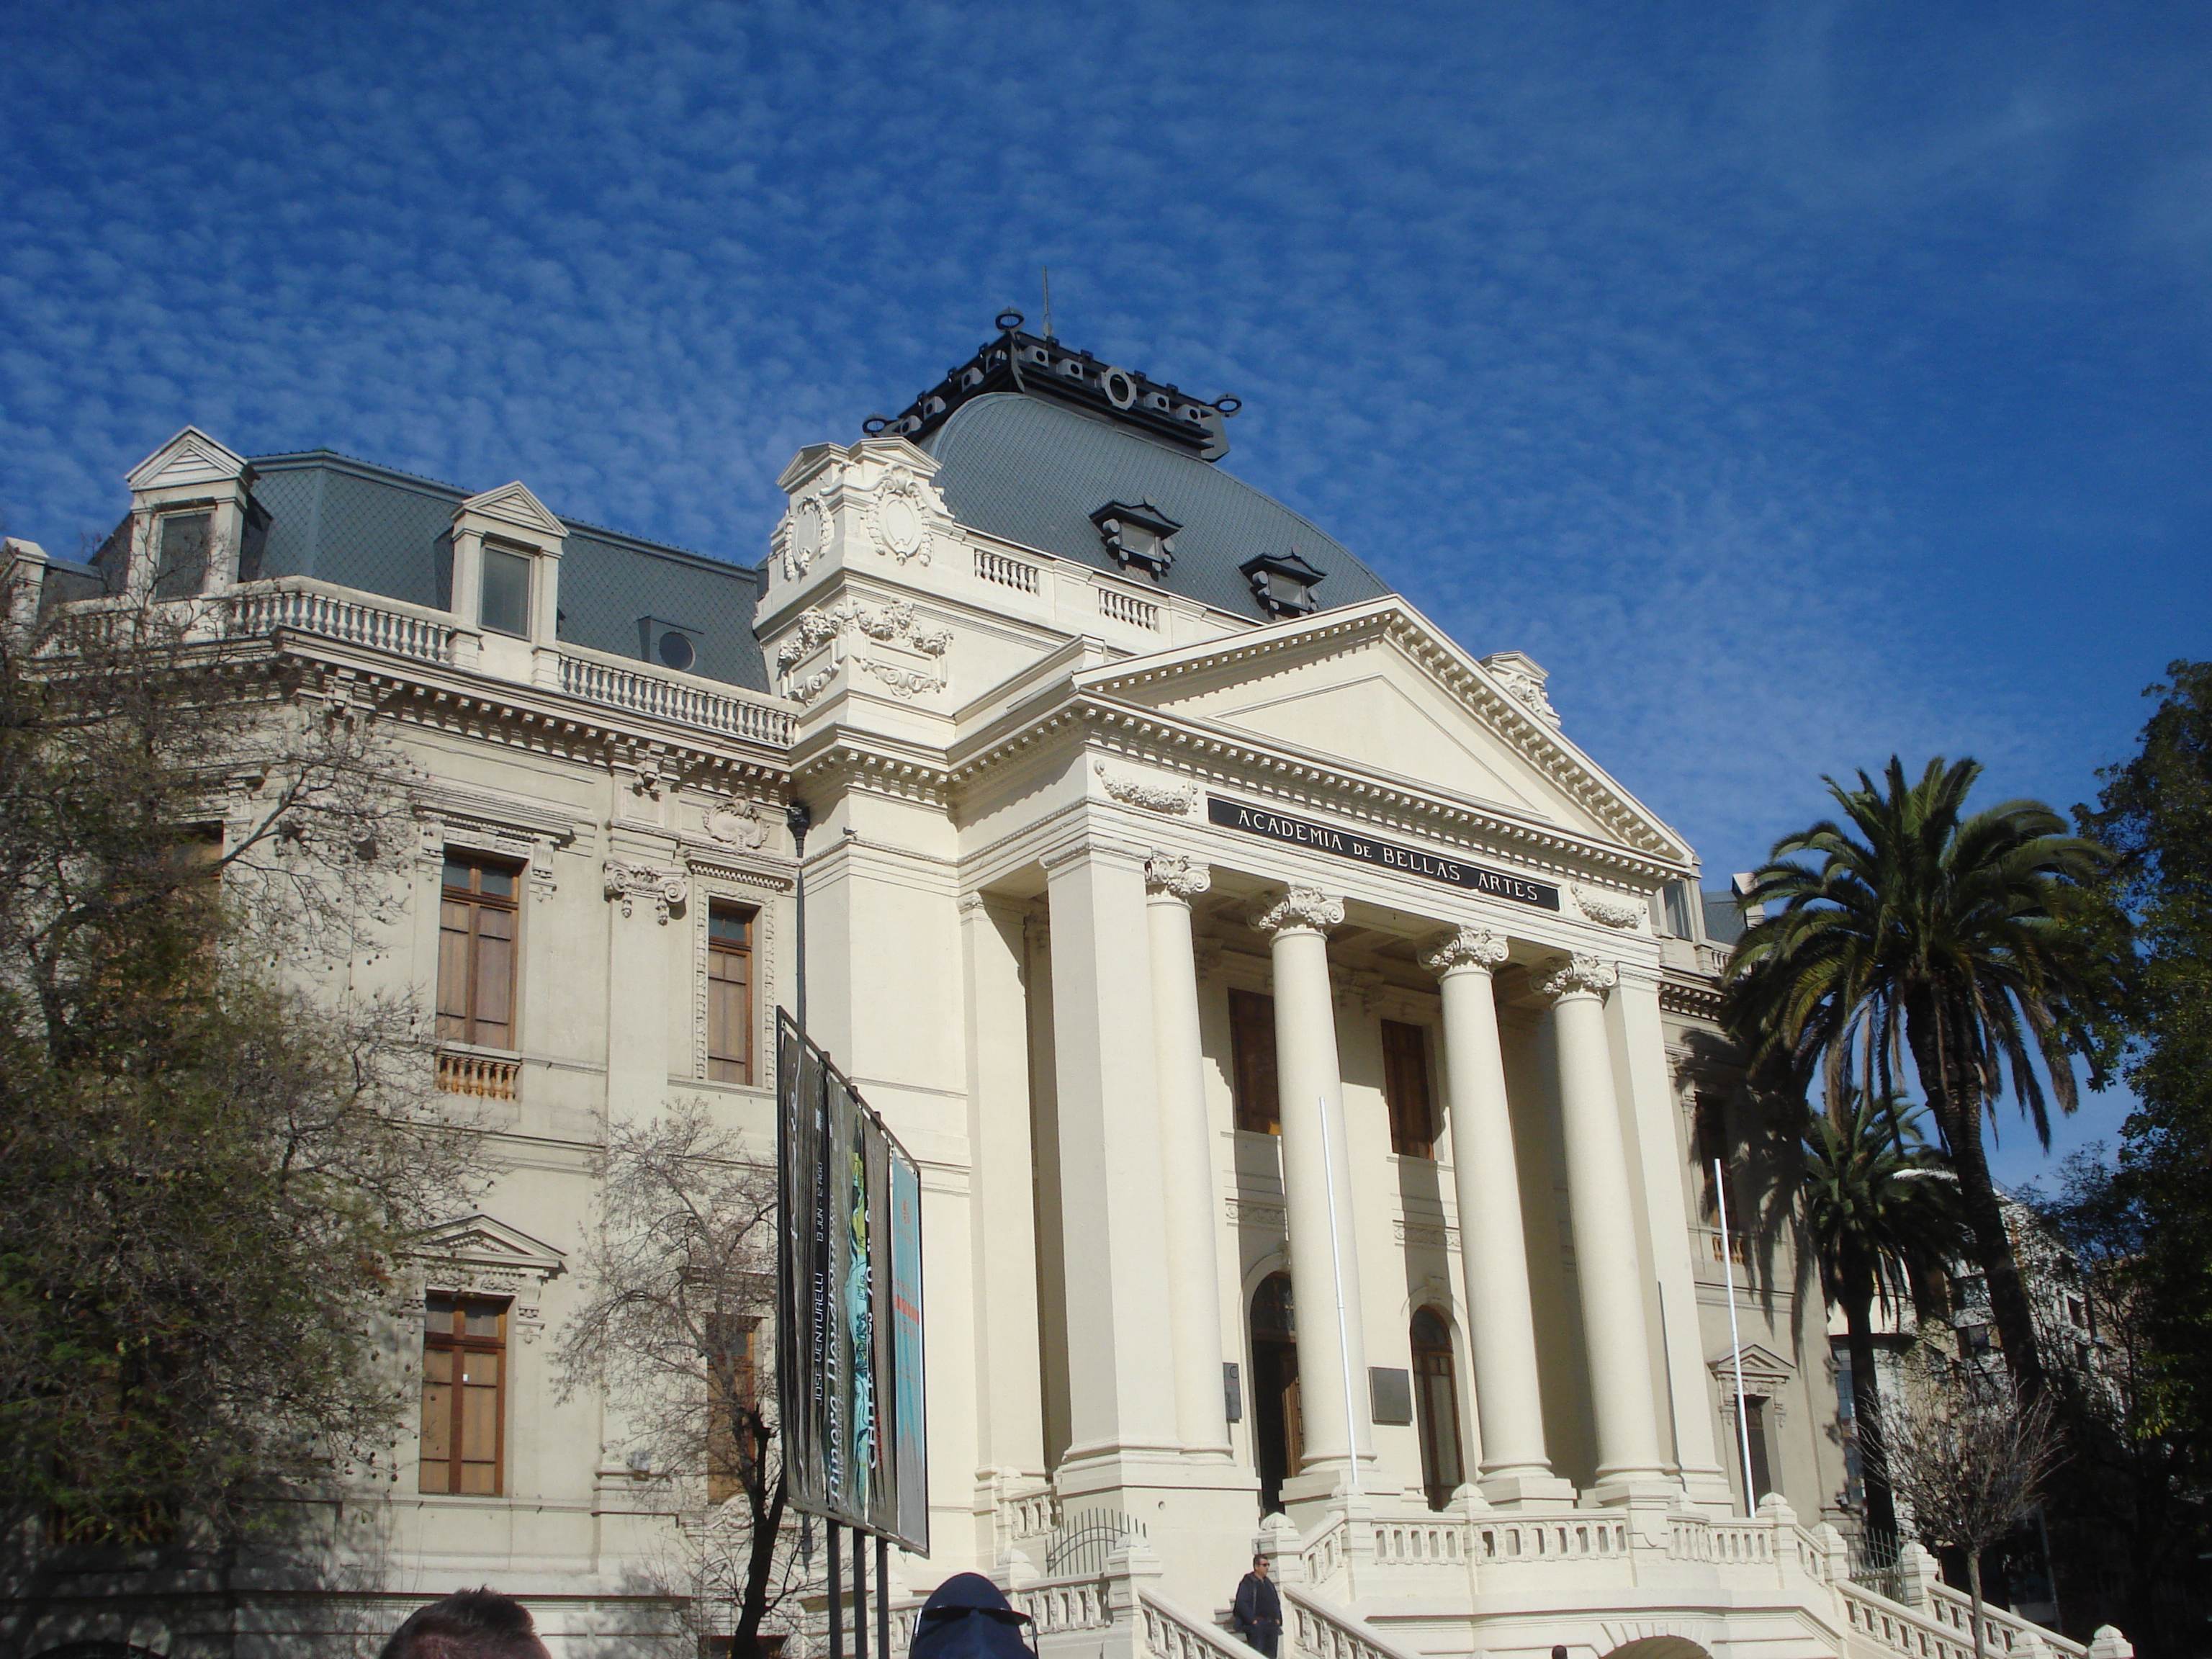 Museo Nacional de Bellas Artes located near the Lastarria Boutique Hotel